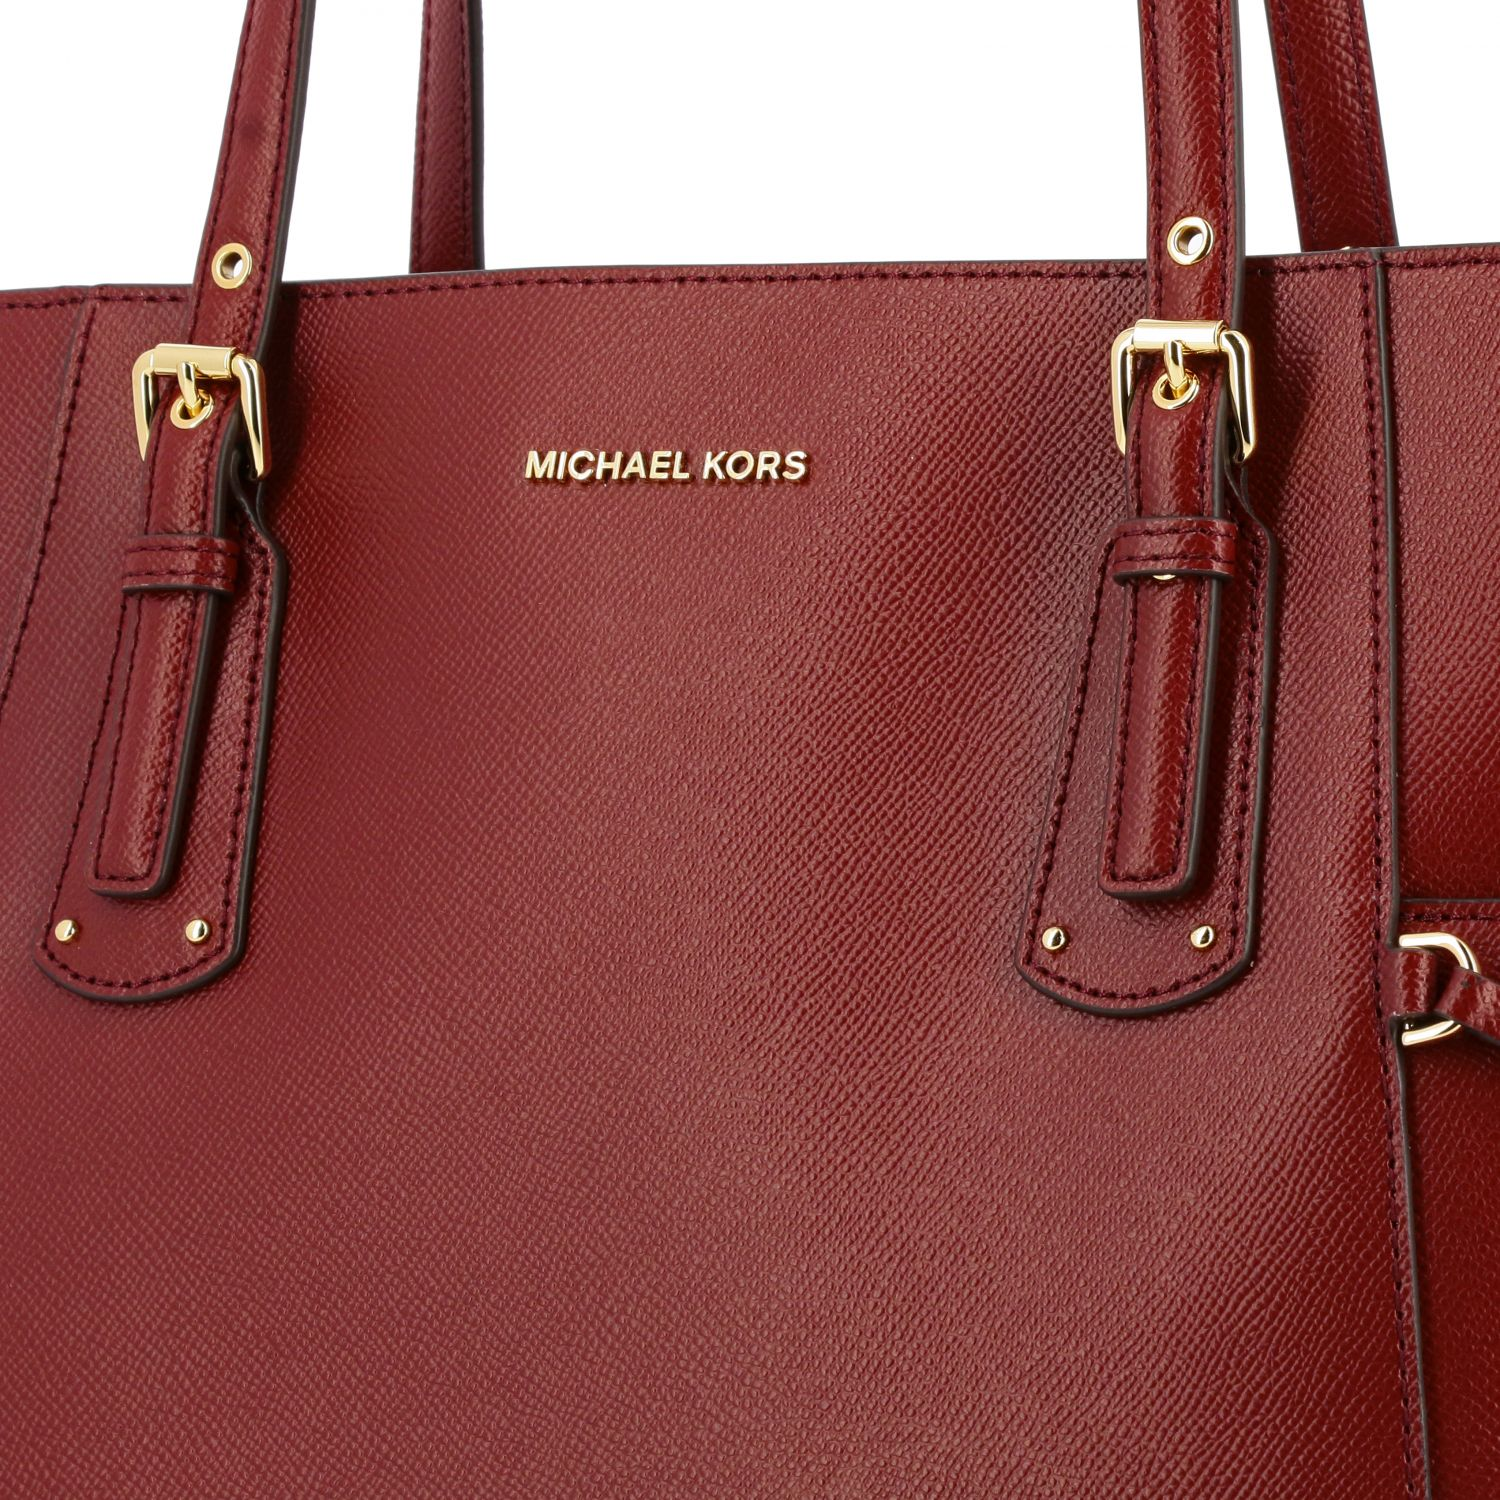 Michael Michael Kors Voyager east west tote 真皮手袋 酒红 4